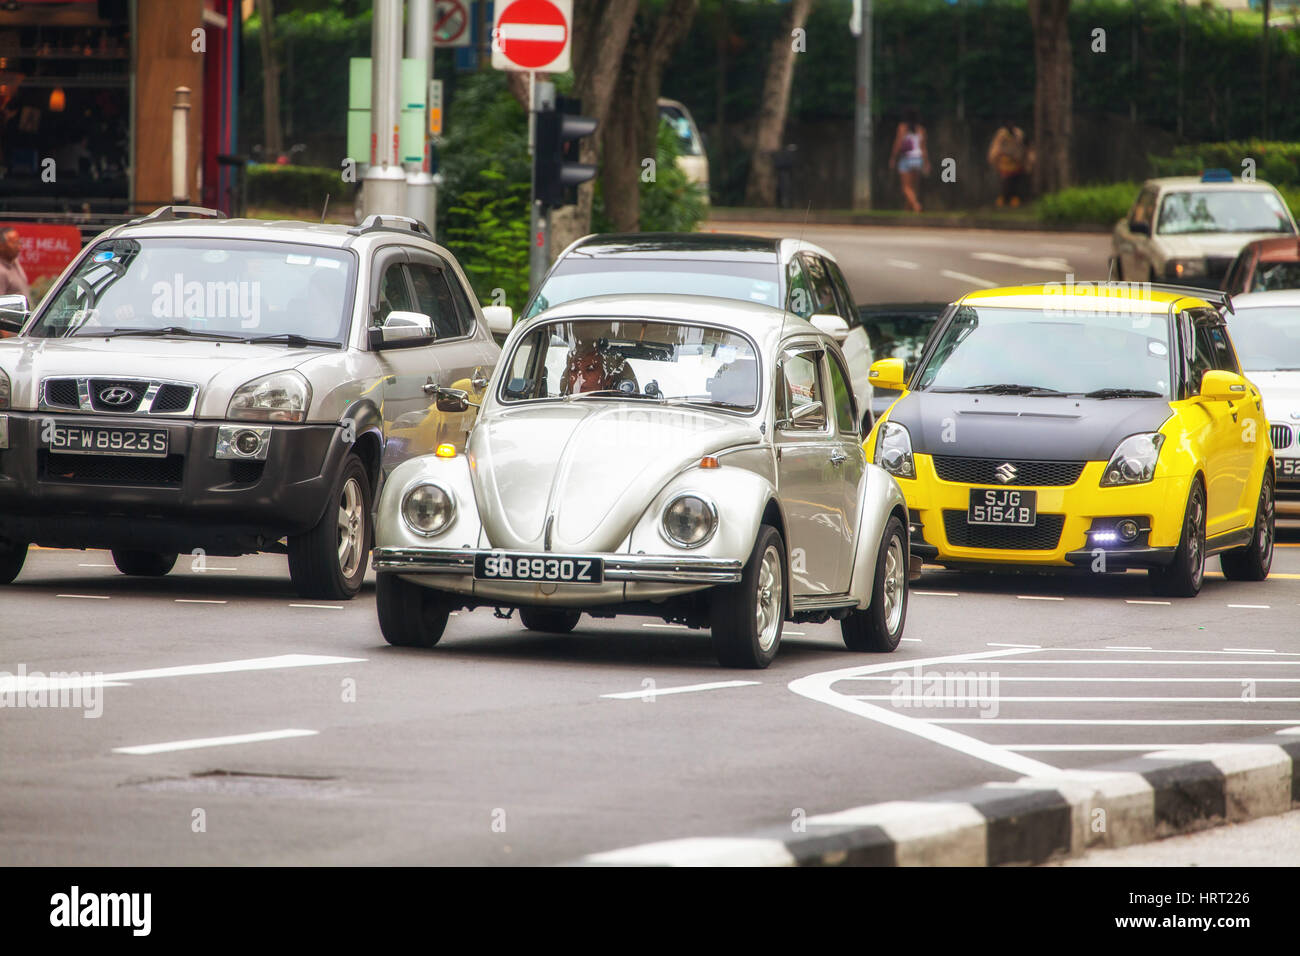 VW Beetle on the streets of Singapore, Singapore, Asia, Singapore - Stock Image